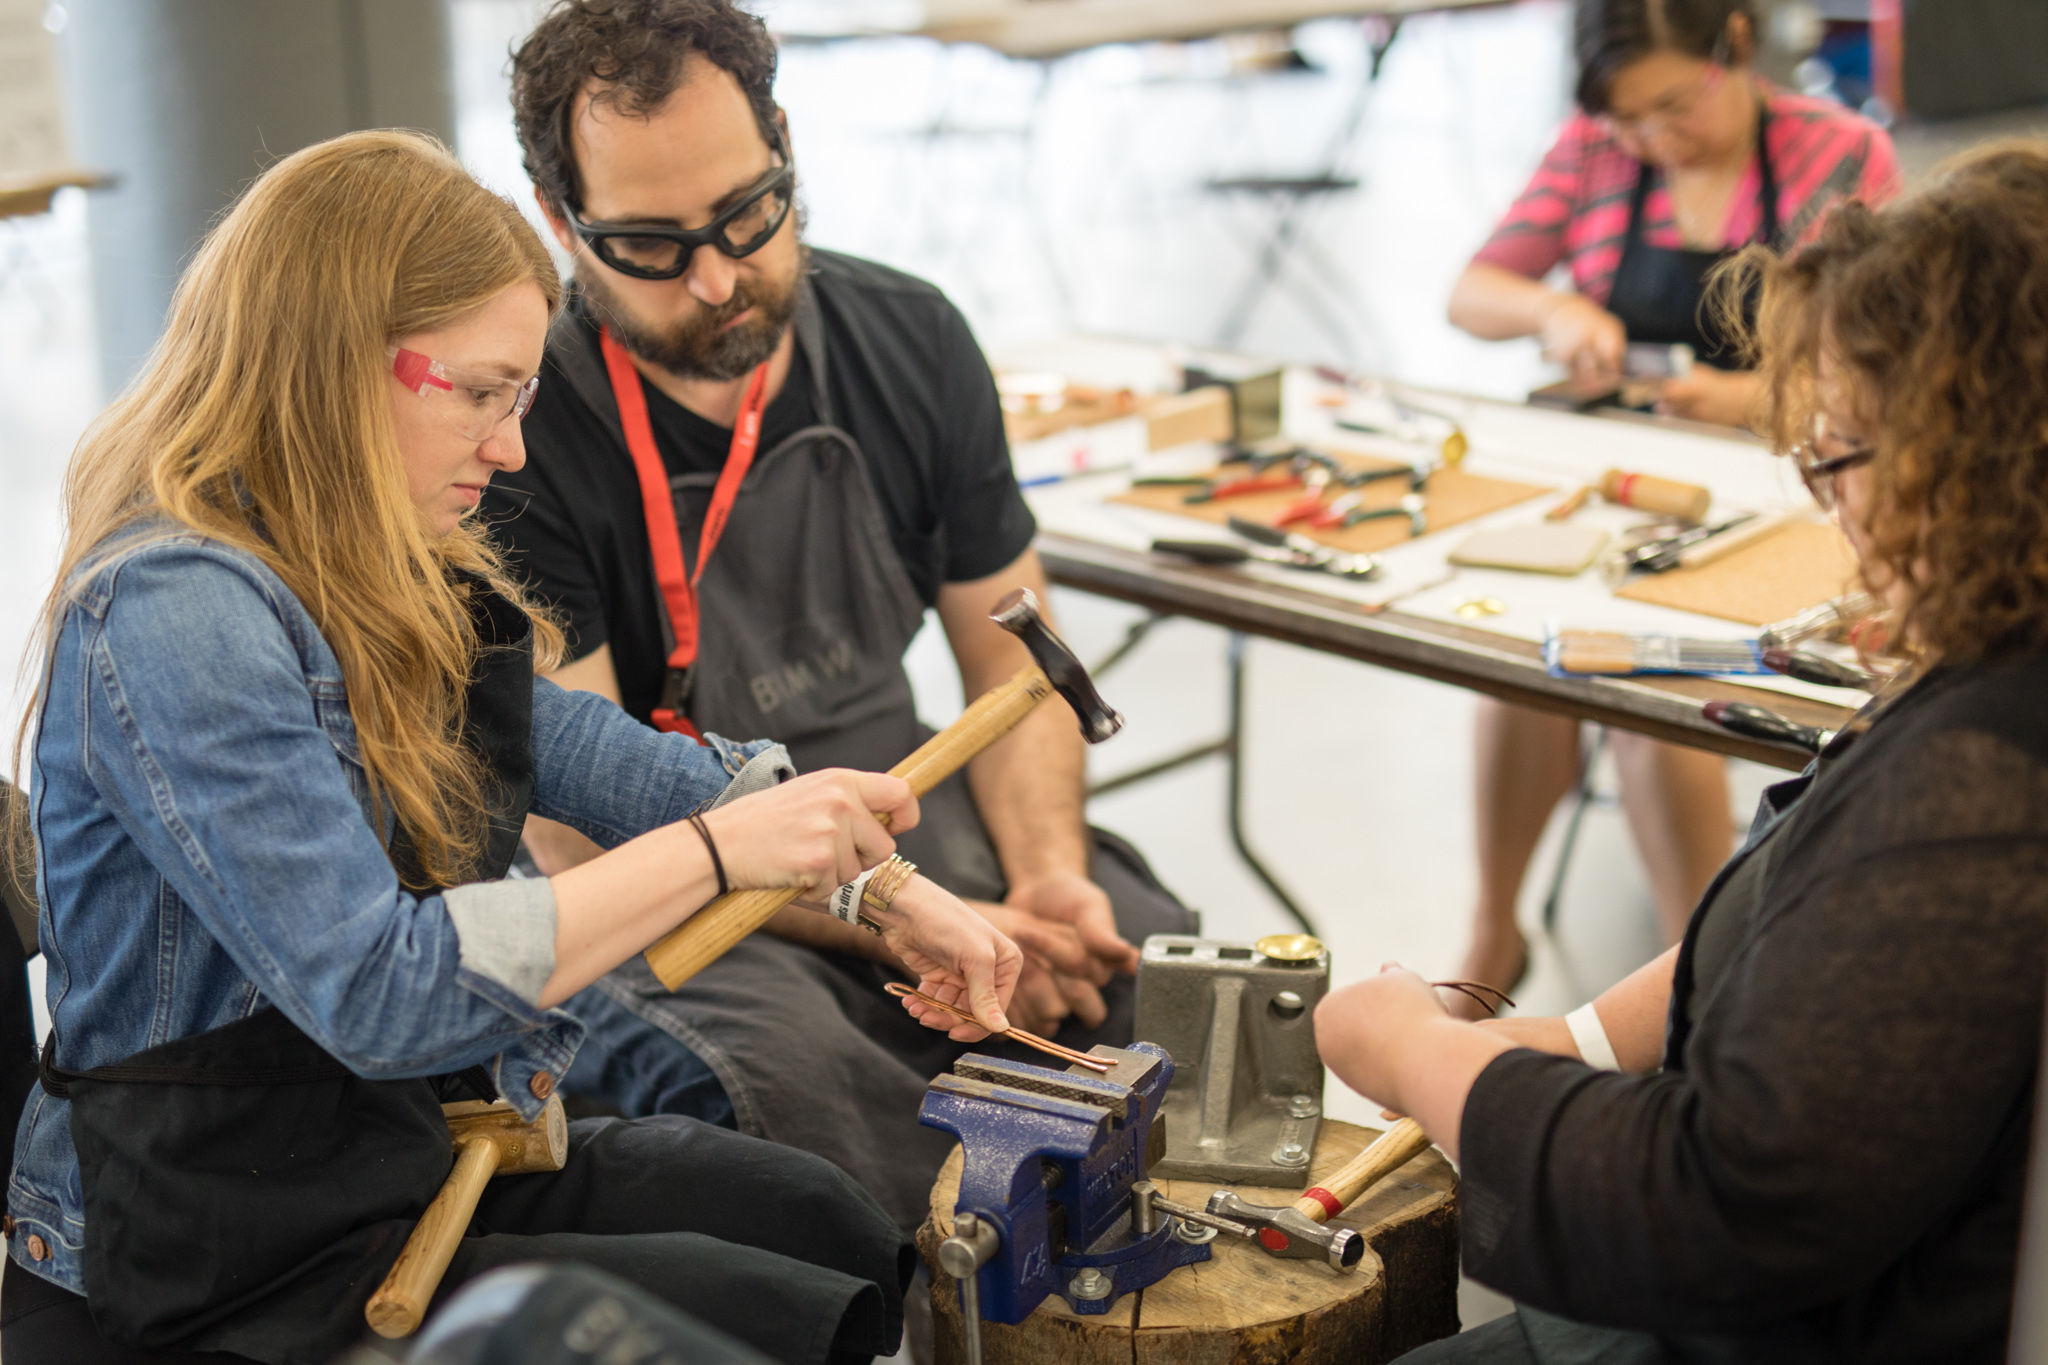 NYCxDesign 2019 The Precious Craft in Focus Festival - Metalworking nycxdesign NYCxDesign 2019: The Precious Craft in Focus Festival NYCxDesign 2019 The Precious Craft in Focus Festival Metalworking